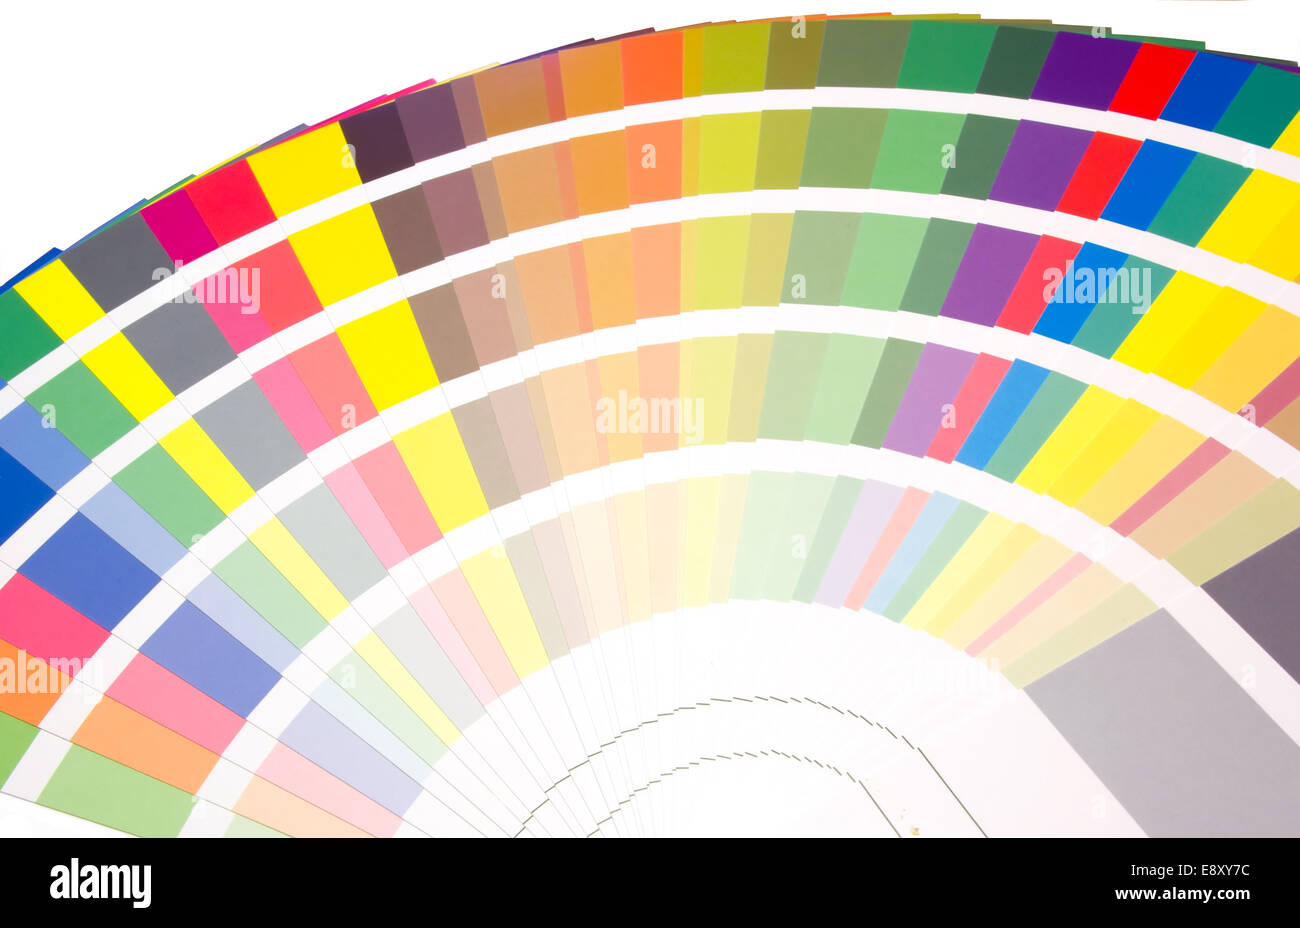 fan of colors and tones samples - Stock Image